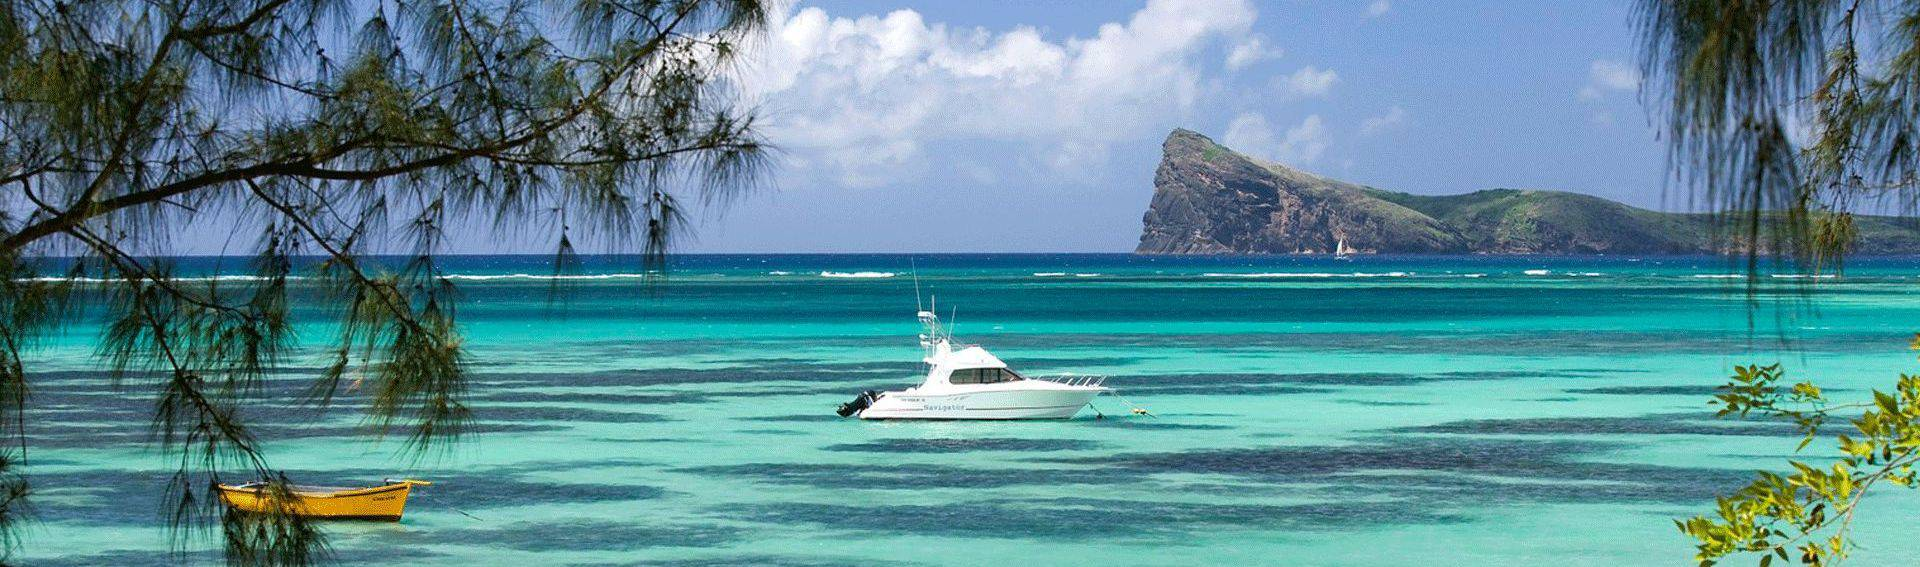 Mauritius, a sparkling crystal in the turquoise waters